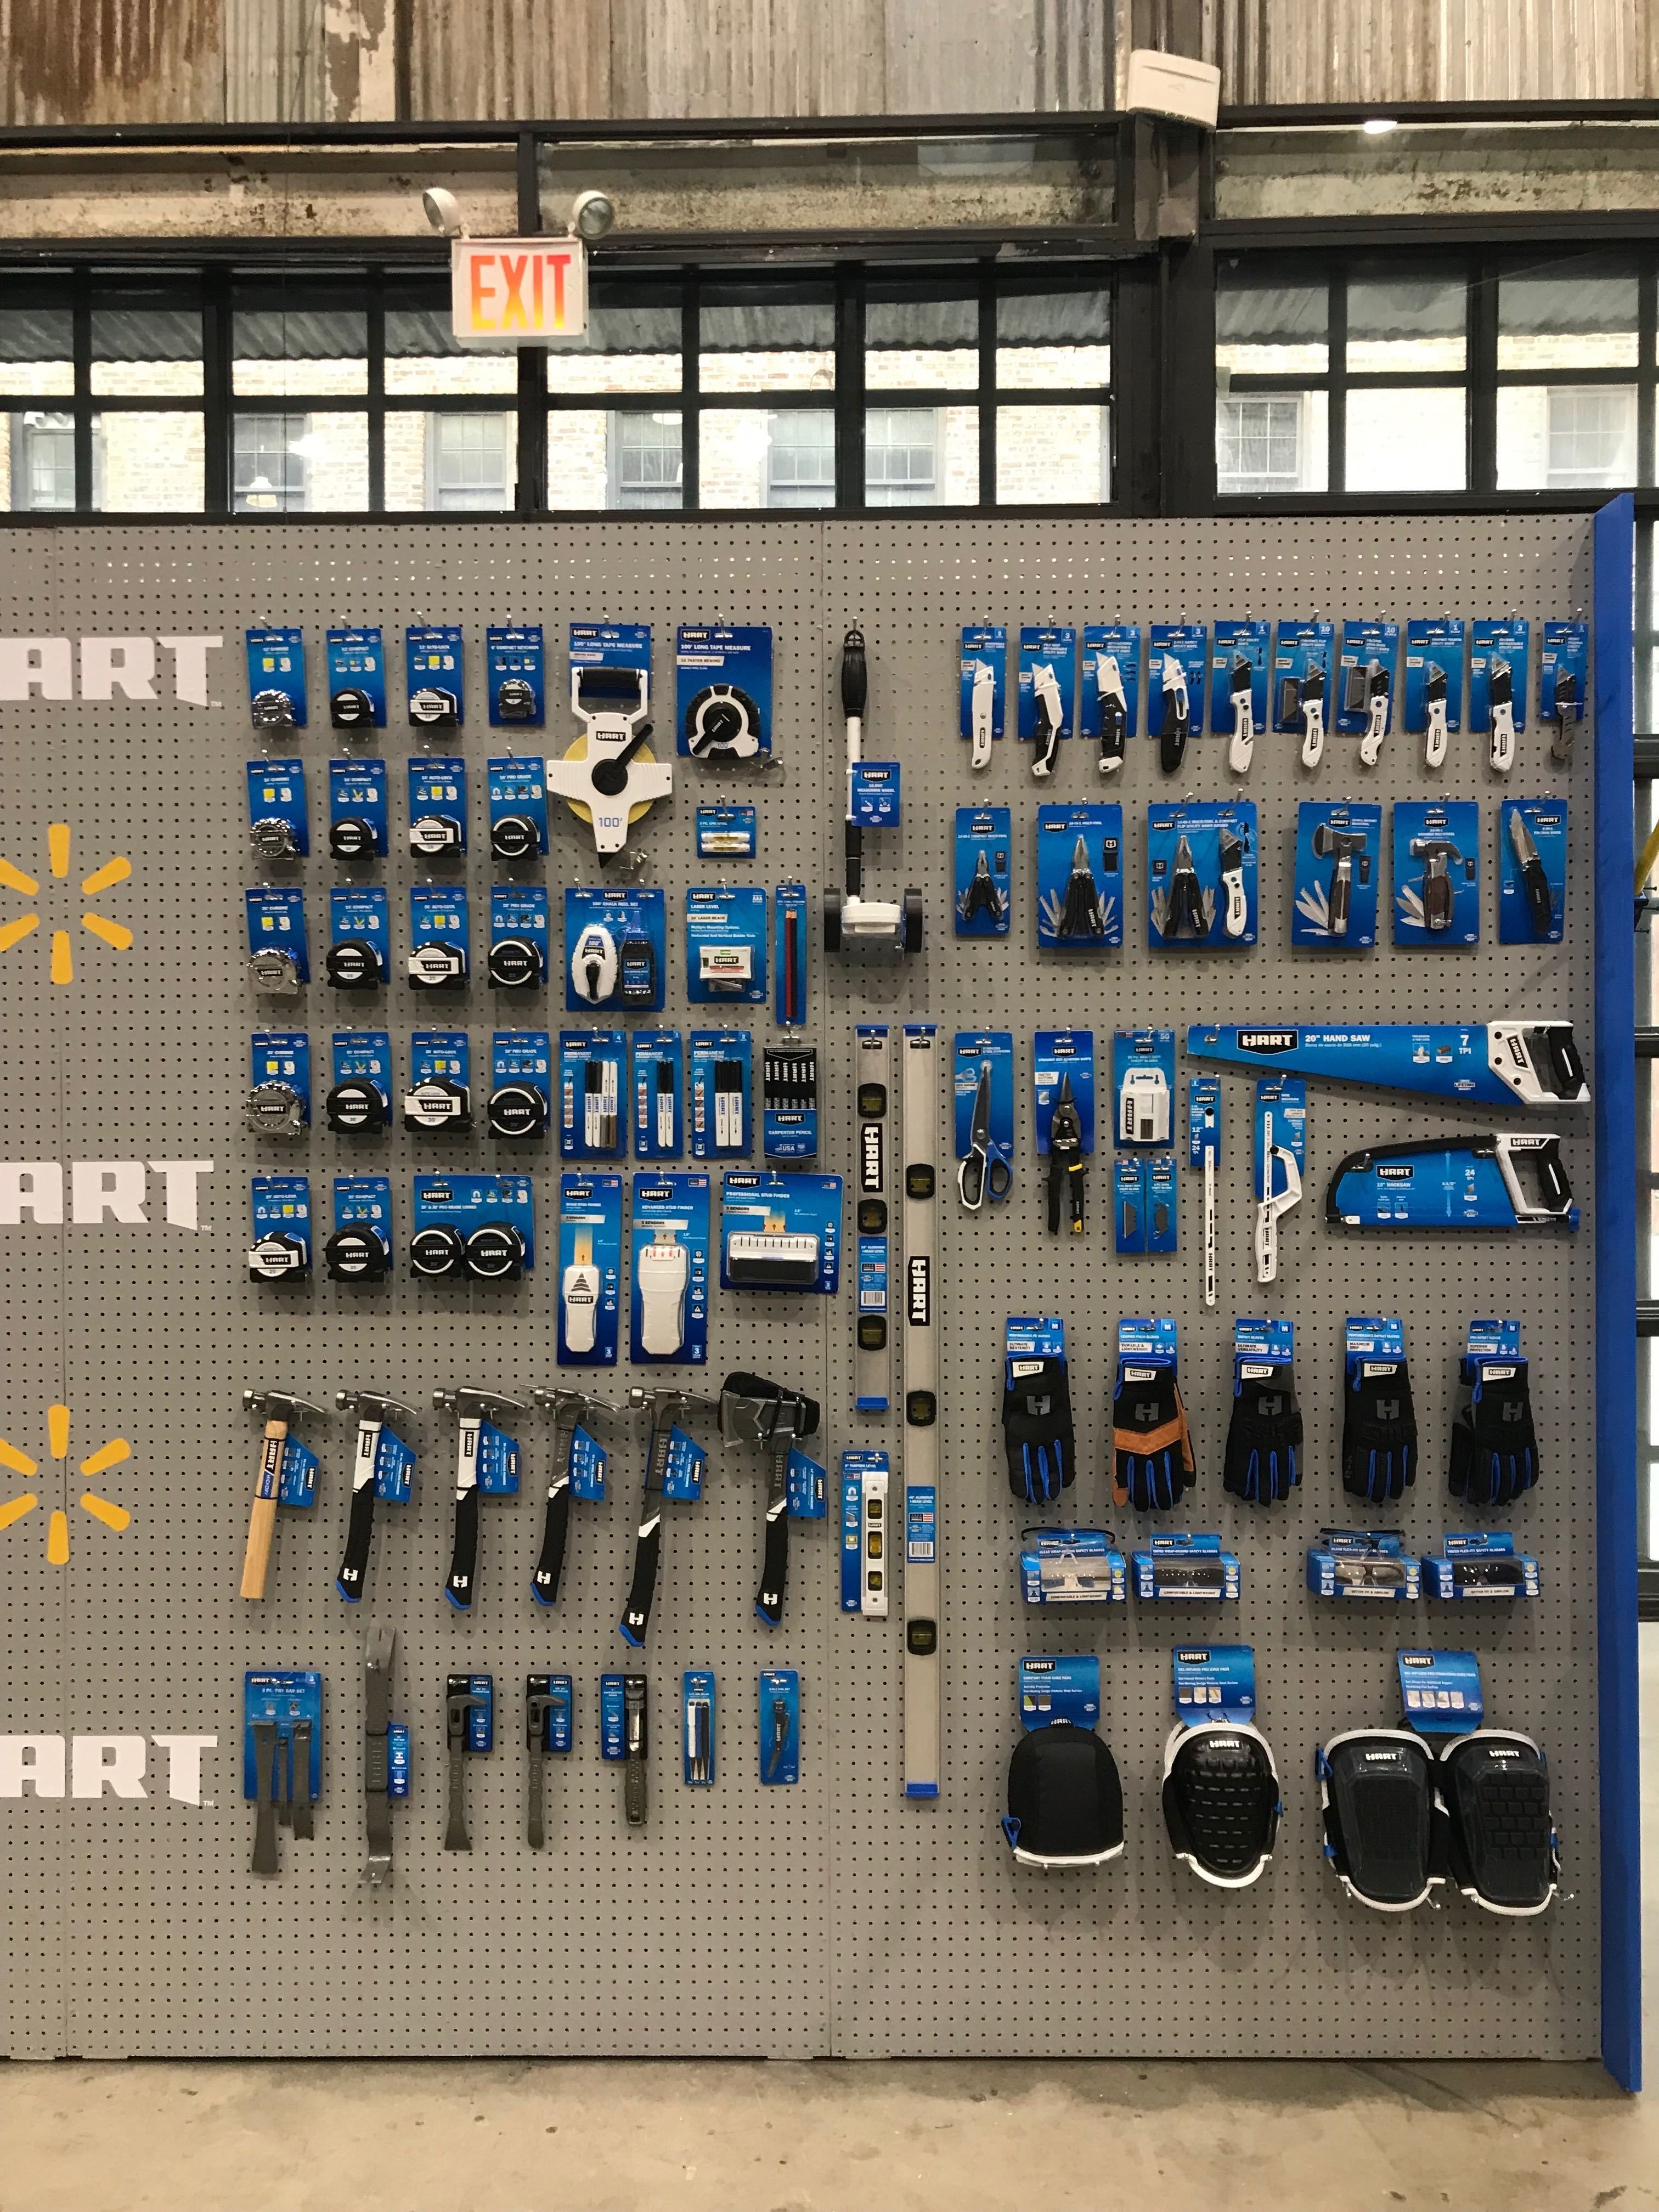 Walmart Launches Hart, an Insanely Comprehensive Line of Tools